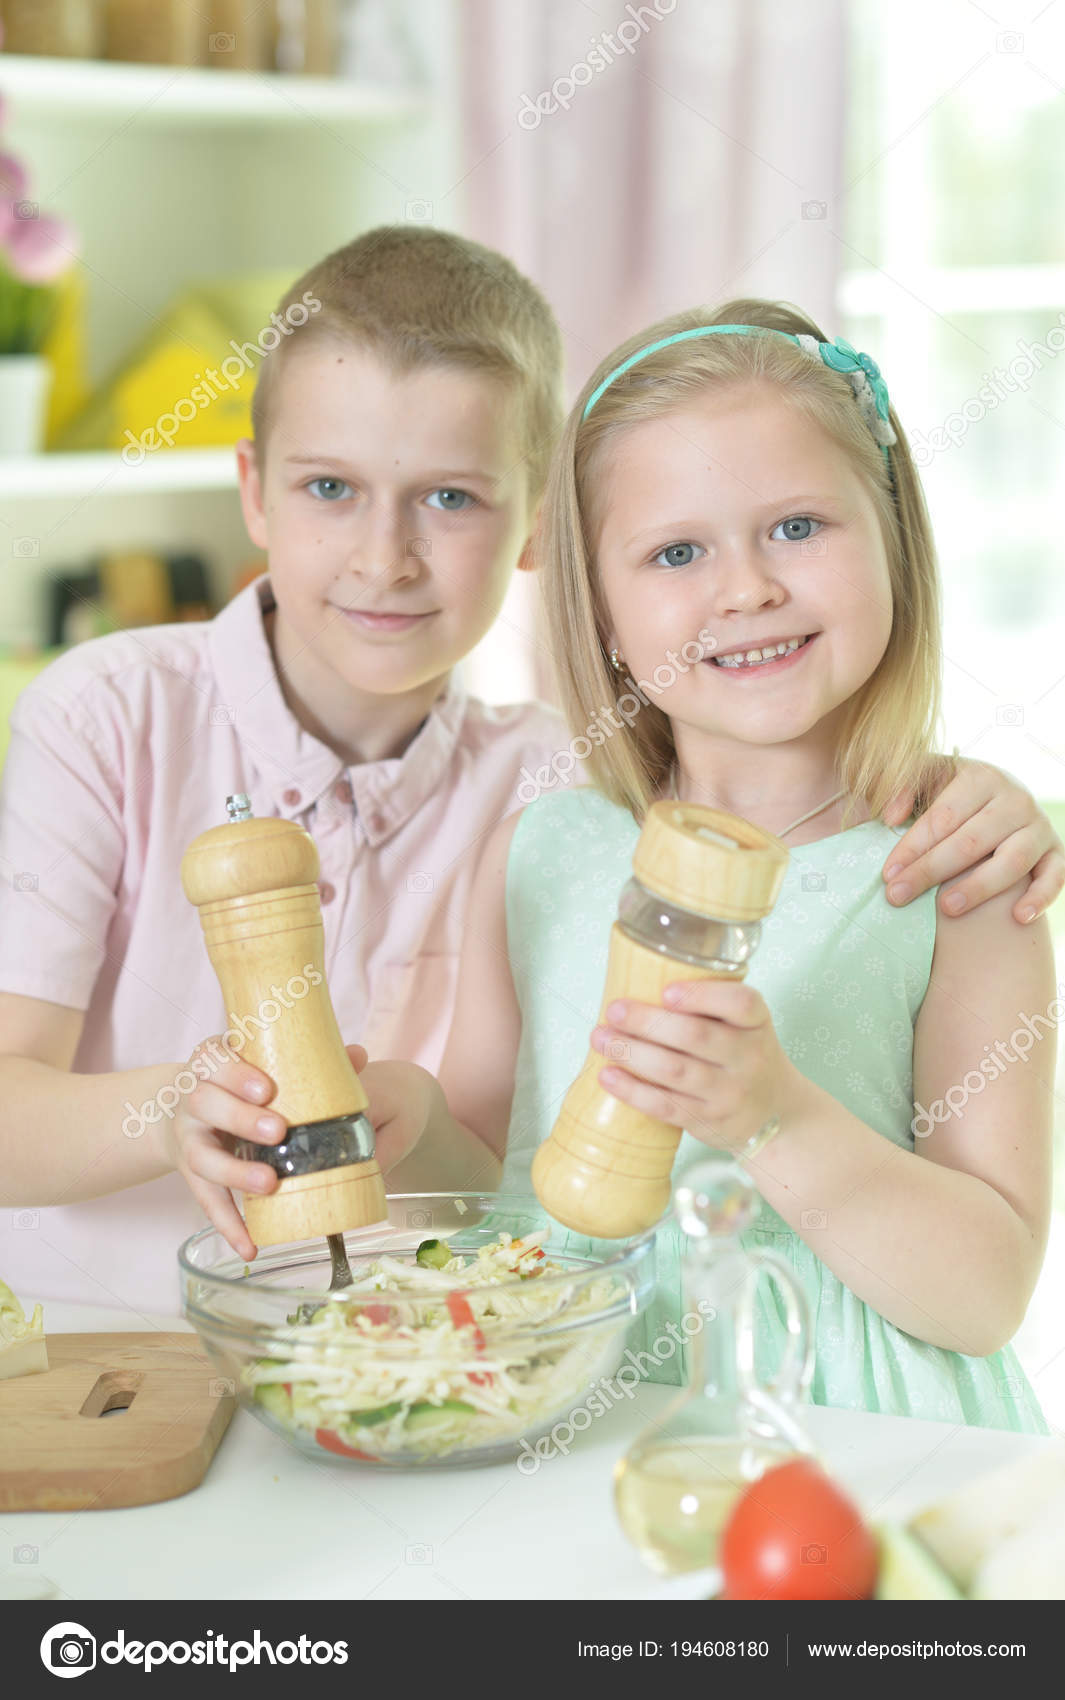 Cute Little Brother Sister Cooking Together Kitchen Stock Photo